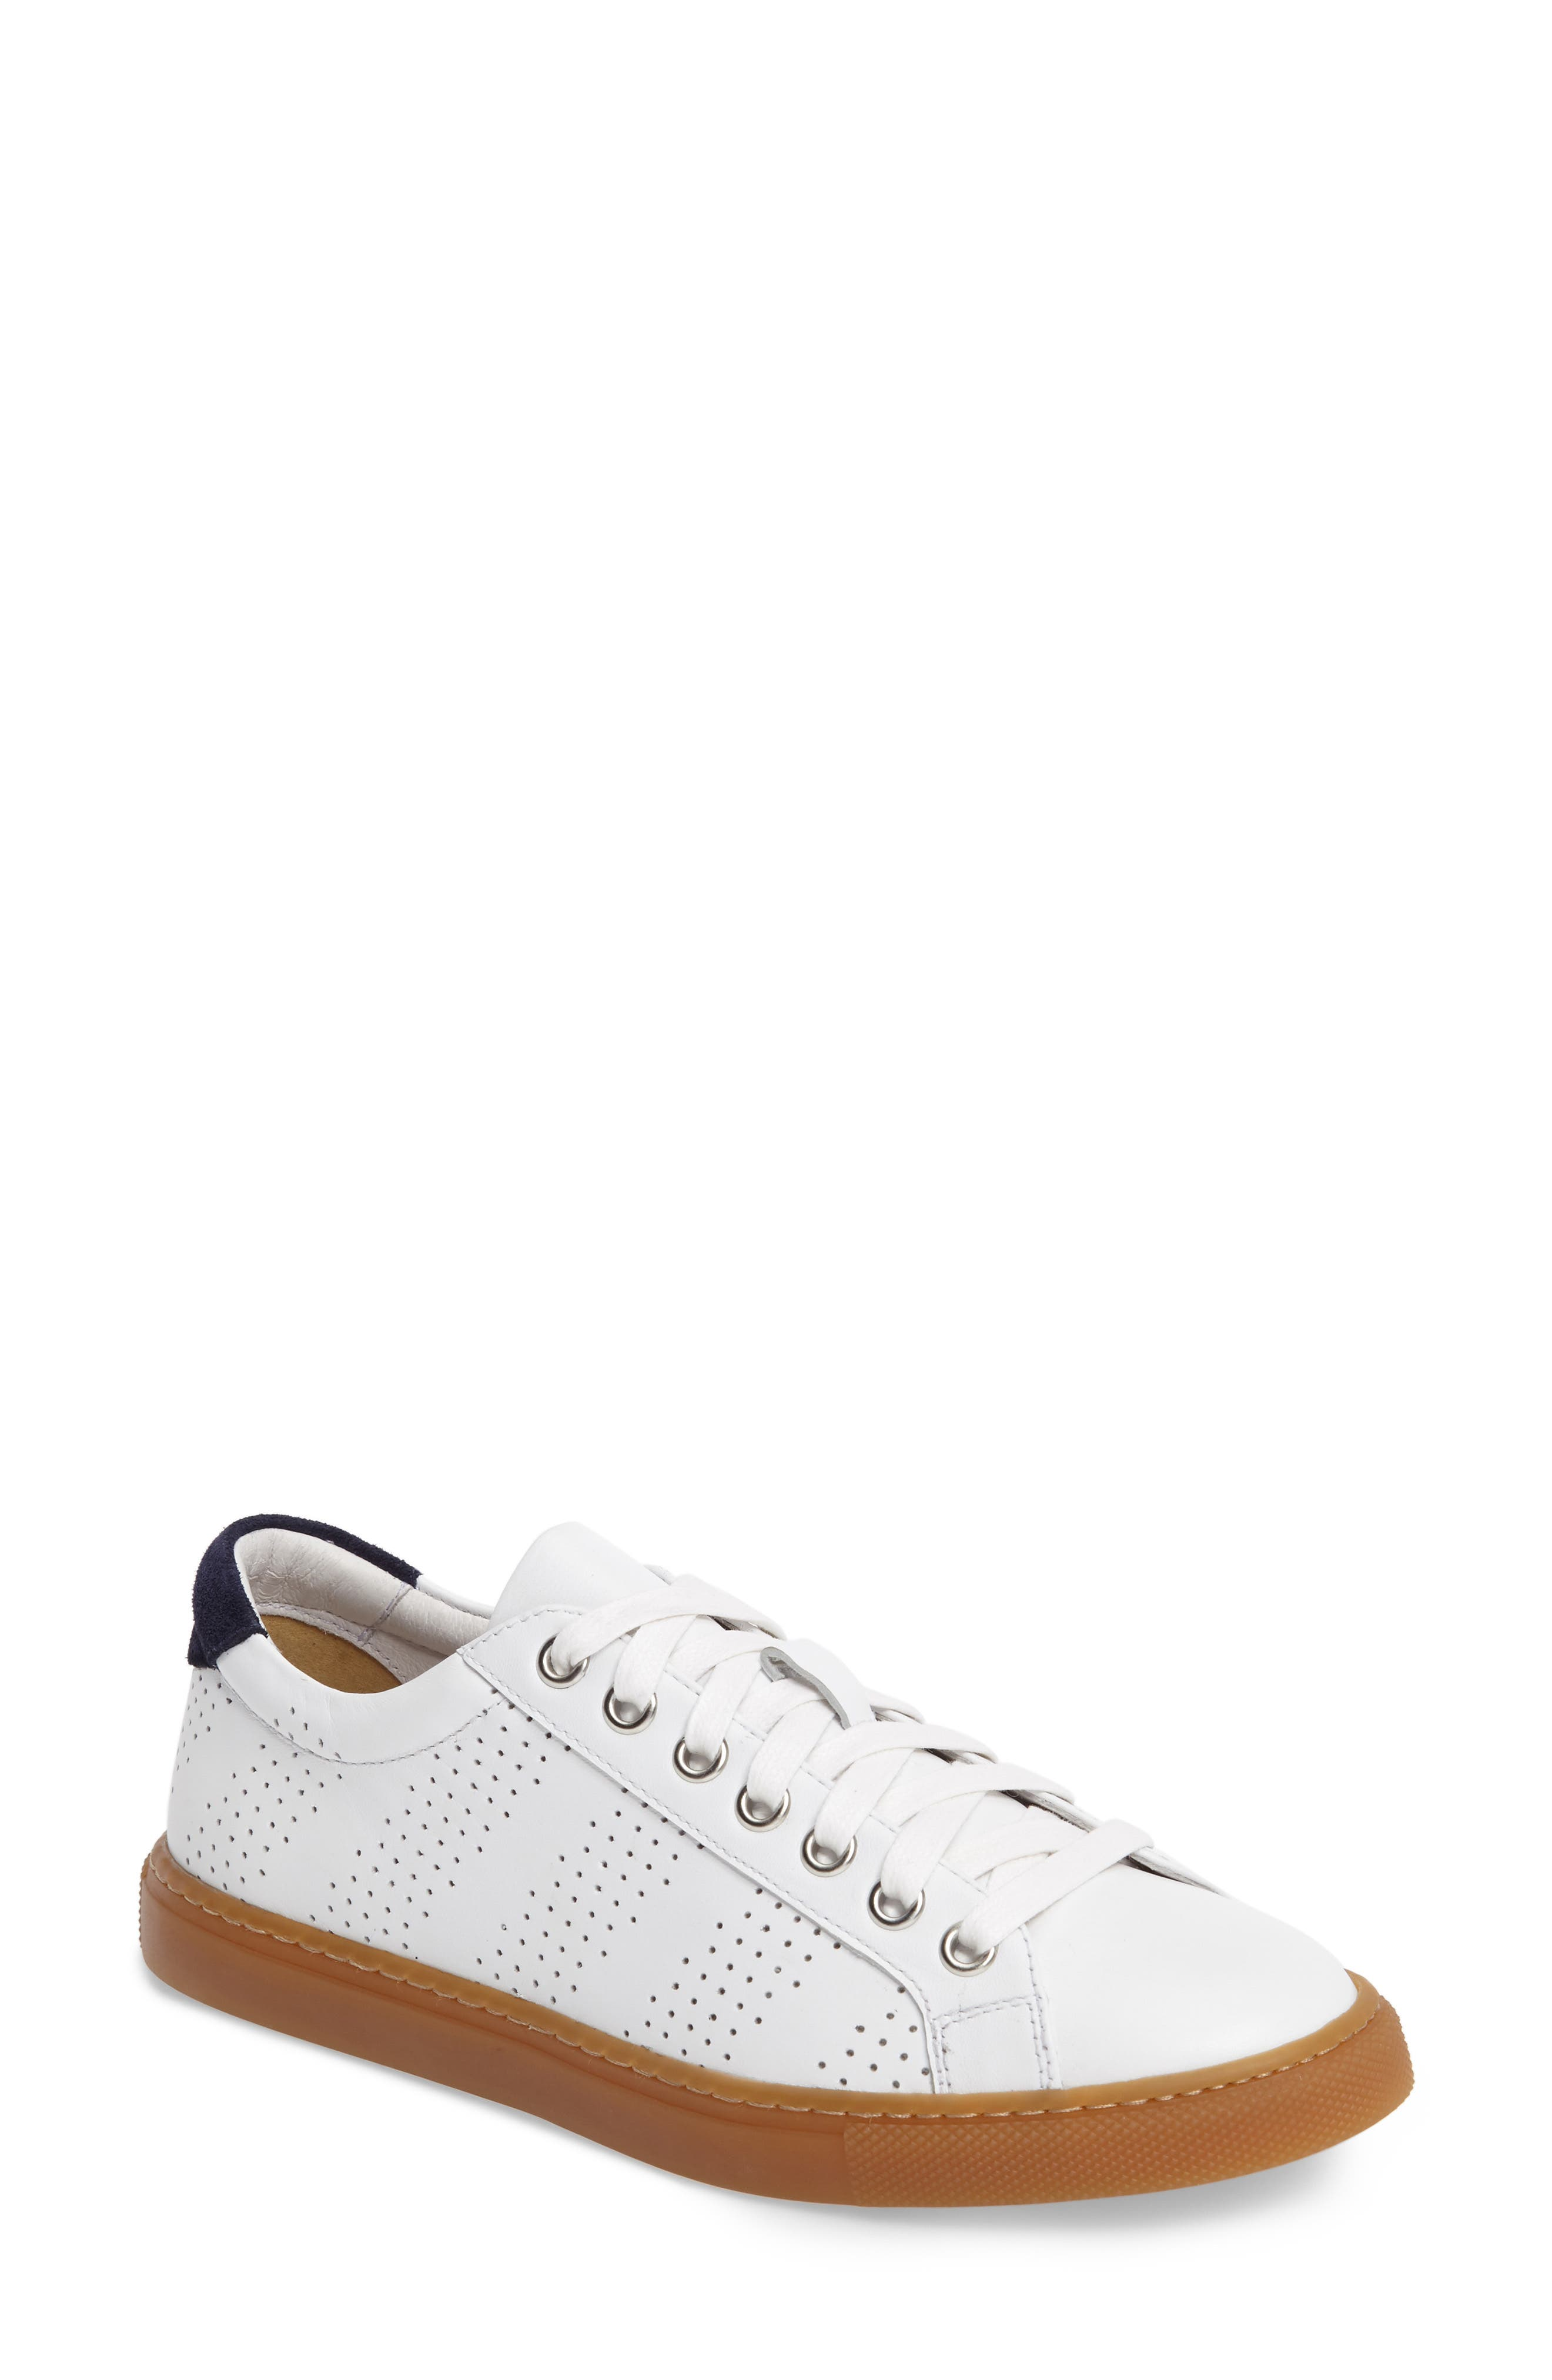 Alternate Image 1 Selected - Treasure & Bond Merrick Perforated Sneaker (Women)